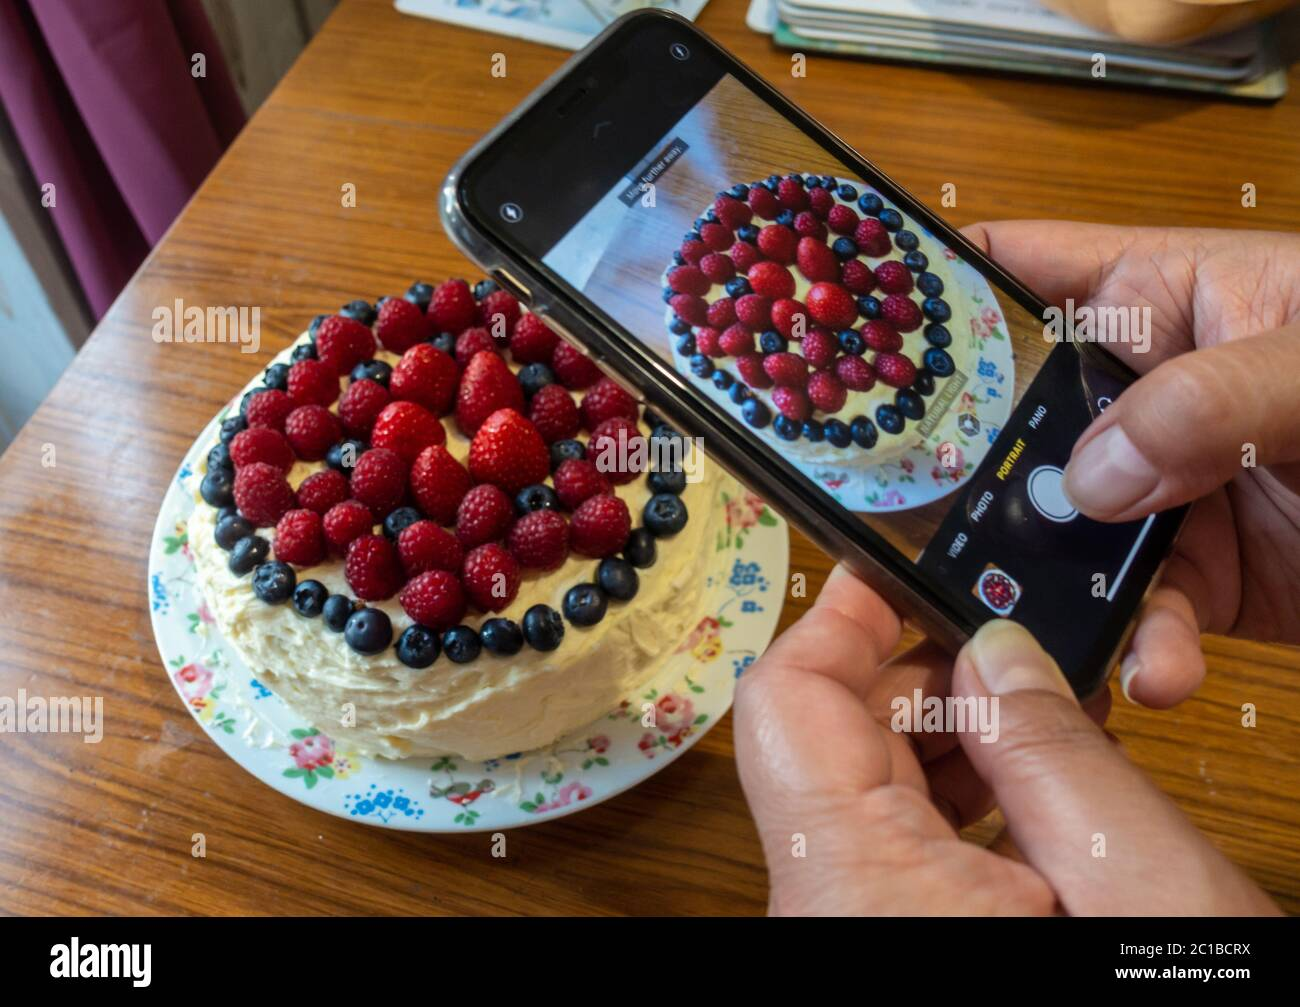 a-lady-uses-a-smartphone-to-take-a-photograph-of-a-freshly-made-cake-which-is-decorated-with-butter-icing-and-soft-red-and-purple-summer-fruits-2C1BCRX.jpg